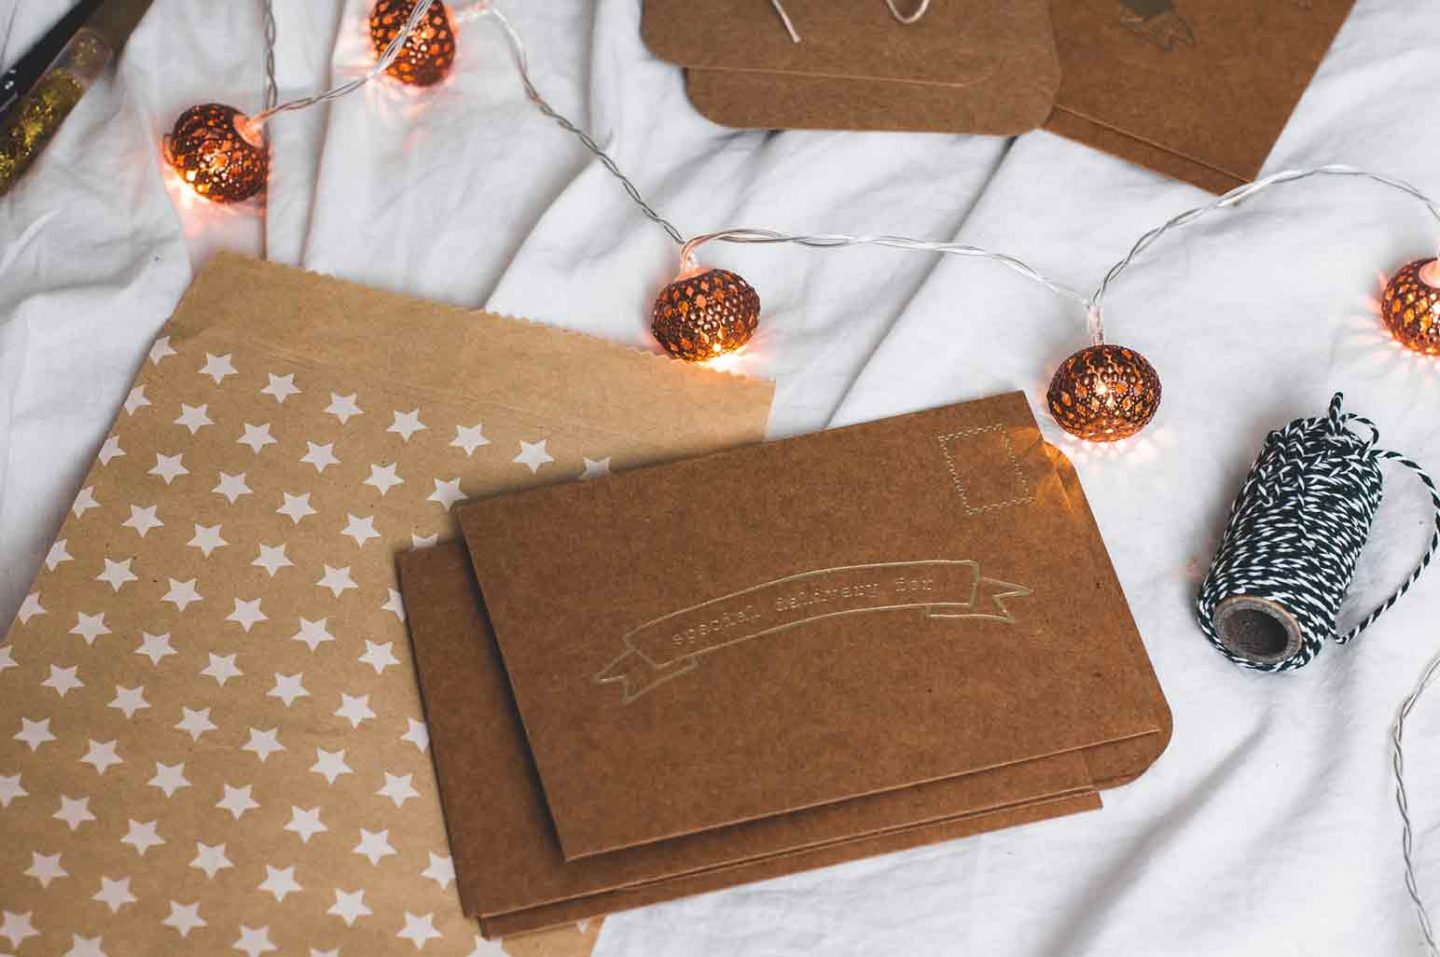 Wrapping Designs For Gift-Giving